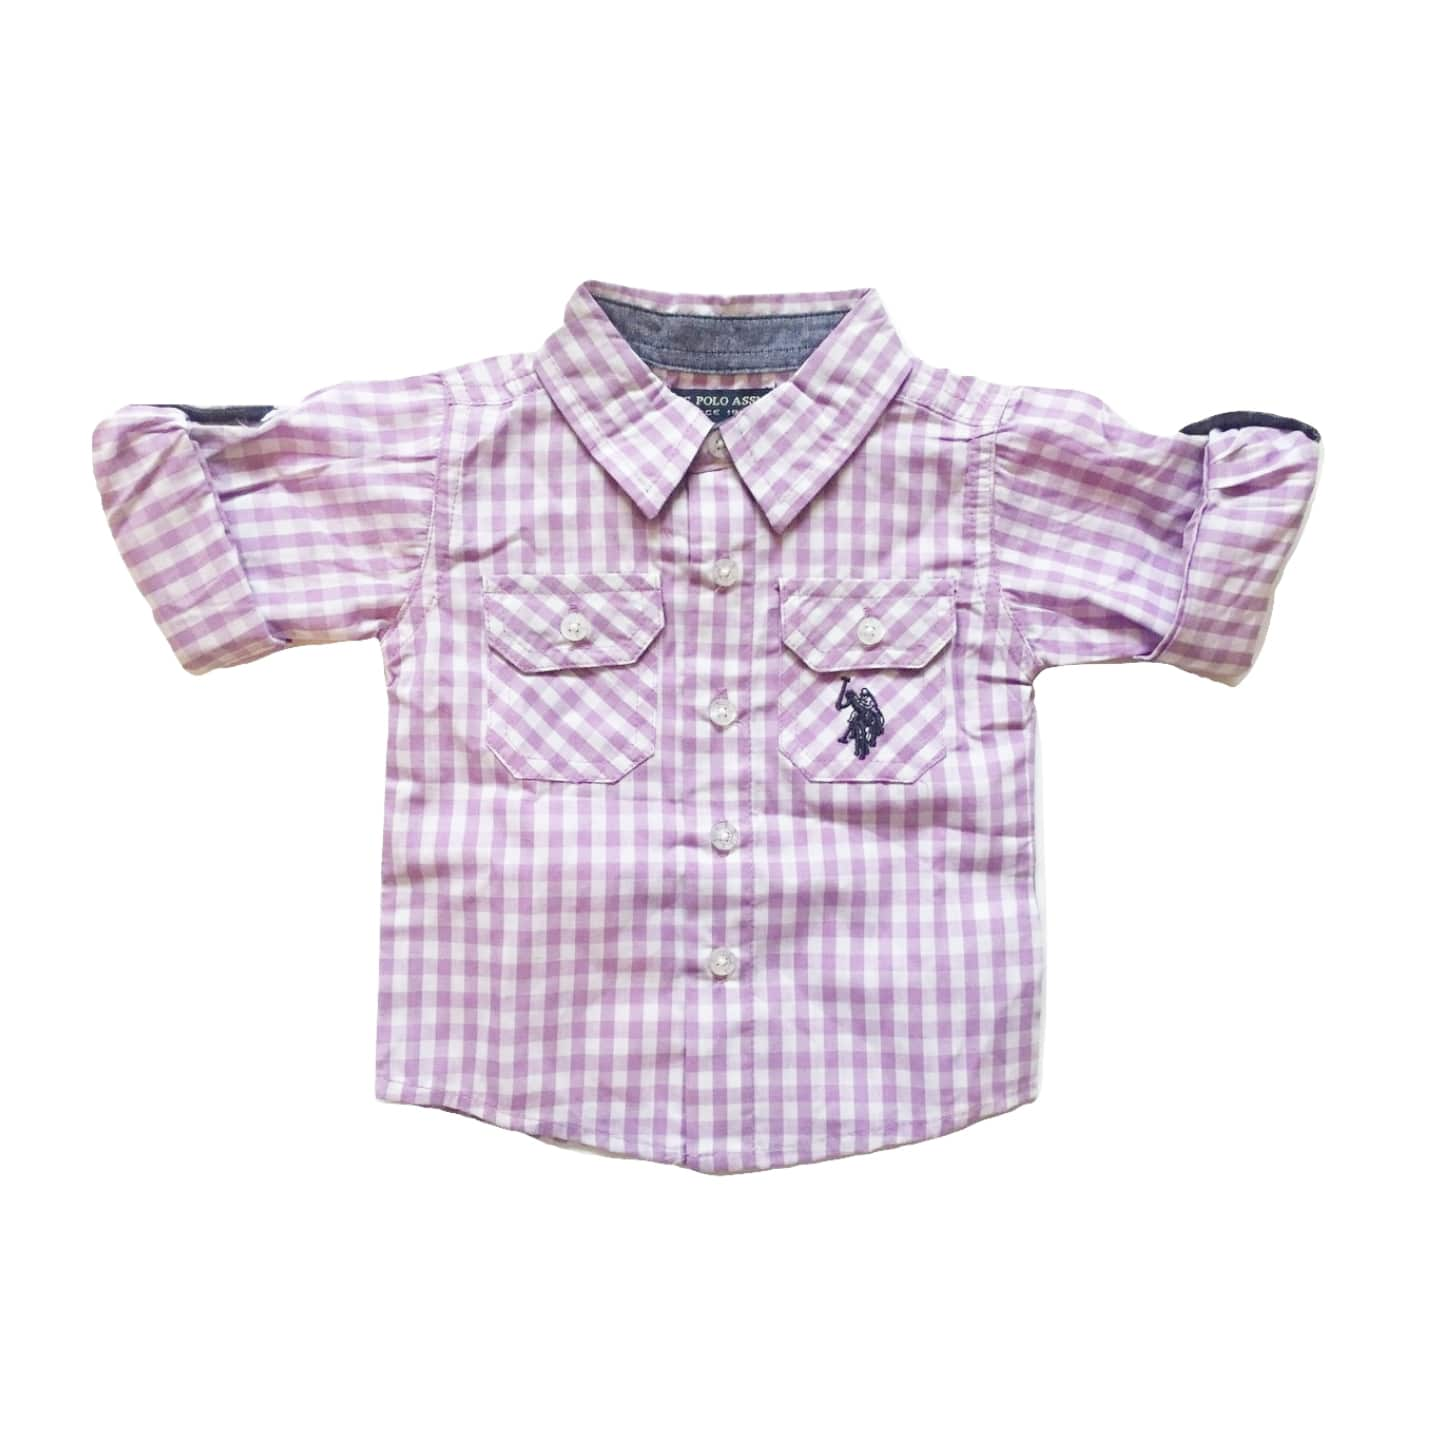 US Polo Assn Boys Purple Checked Short/Longsleeve fold up - Stockpoint Apparel Outlet